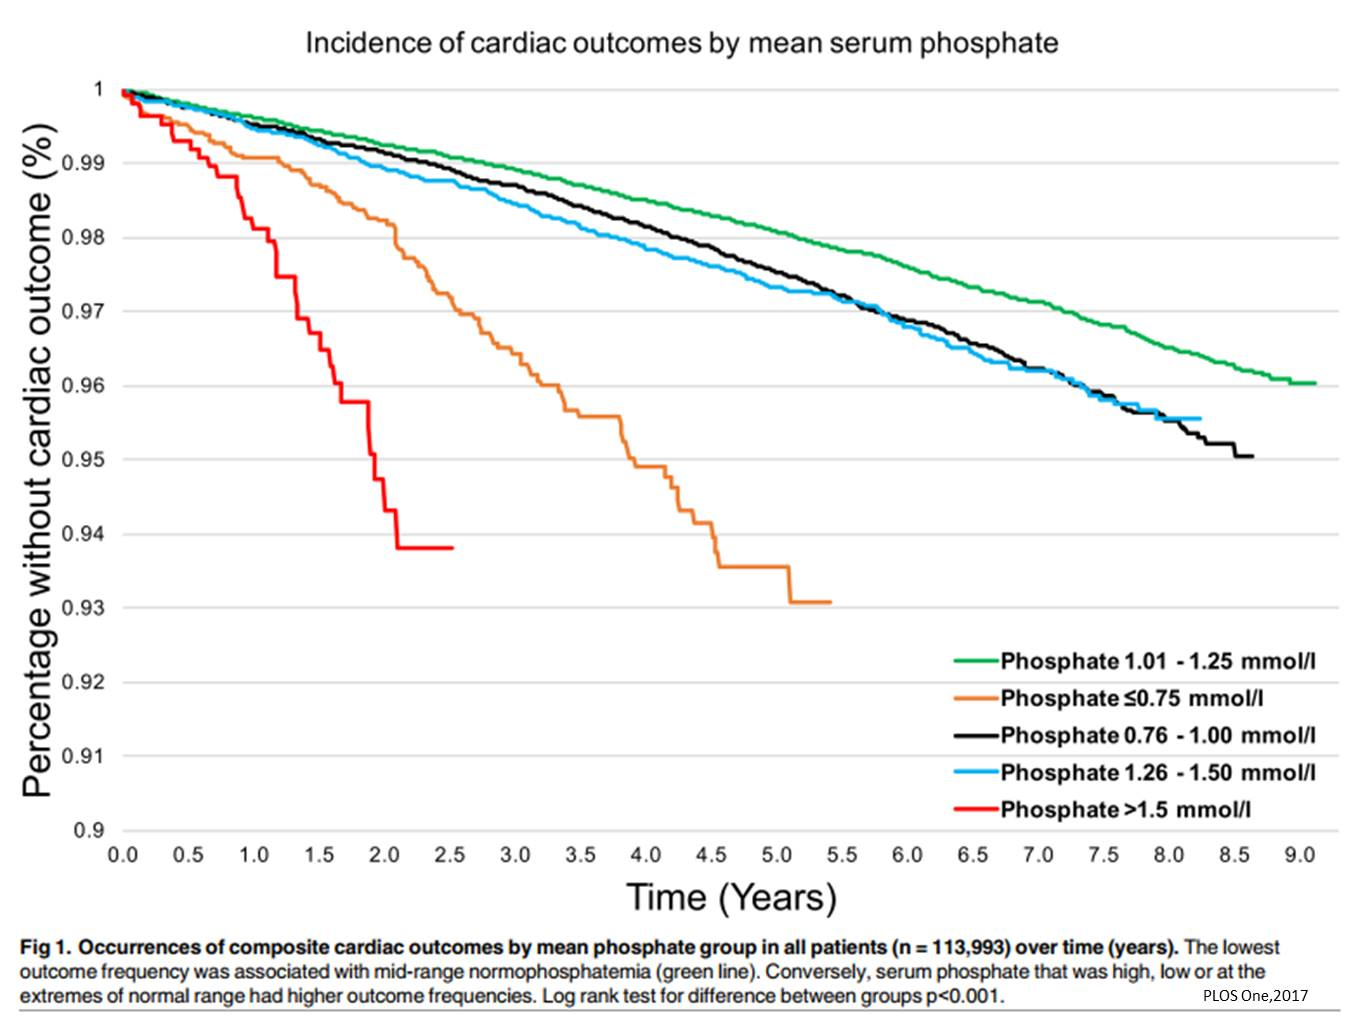 Heart attacks more likely in those with low blood phosphate levels